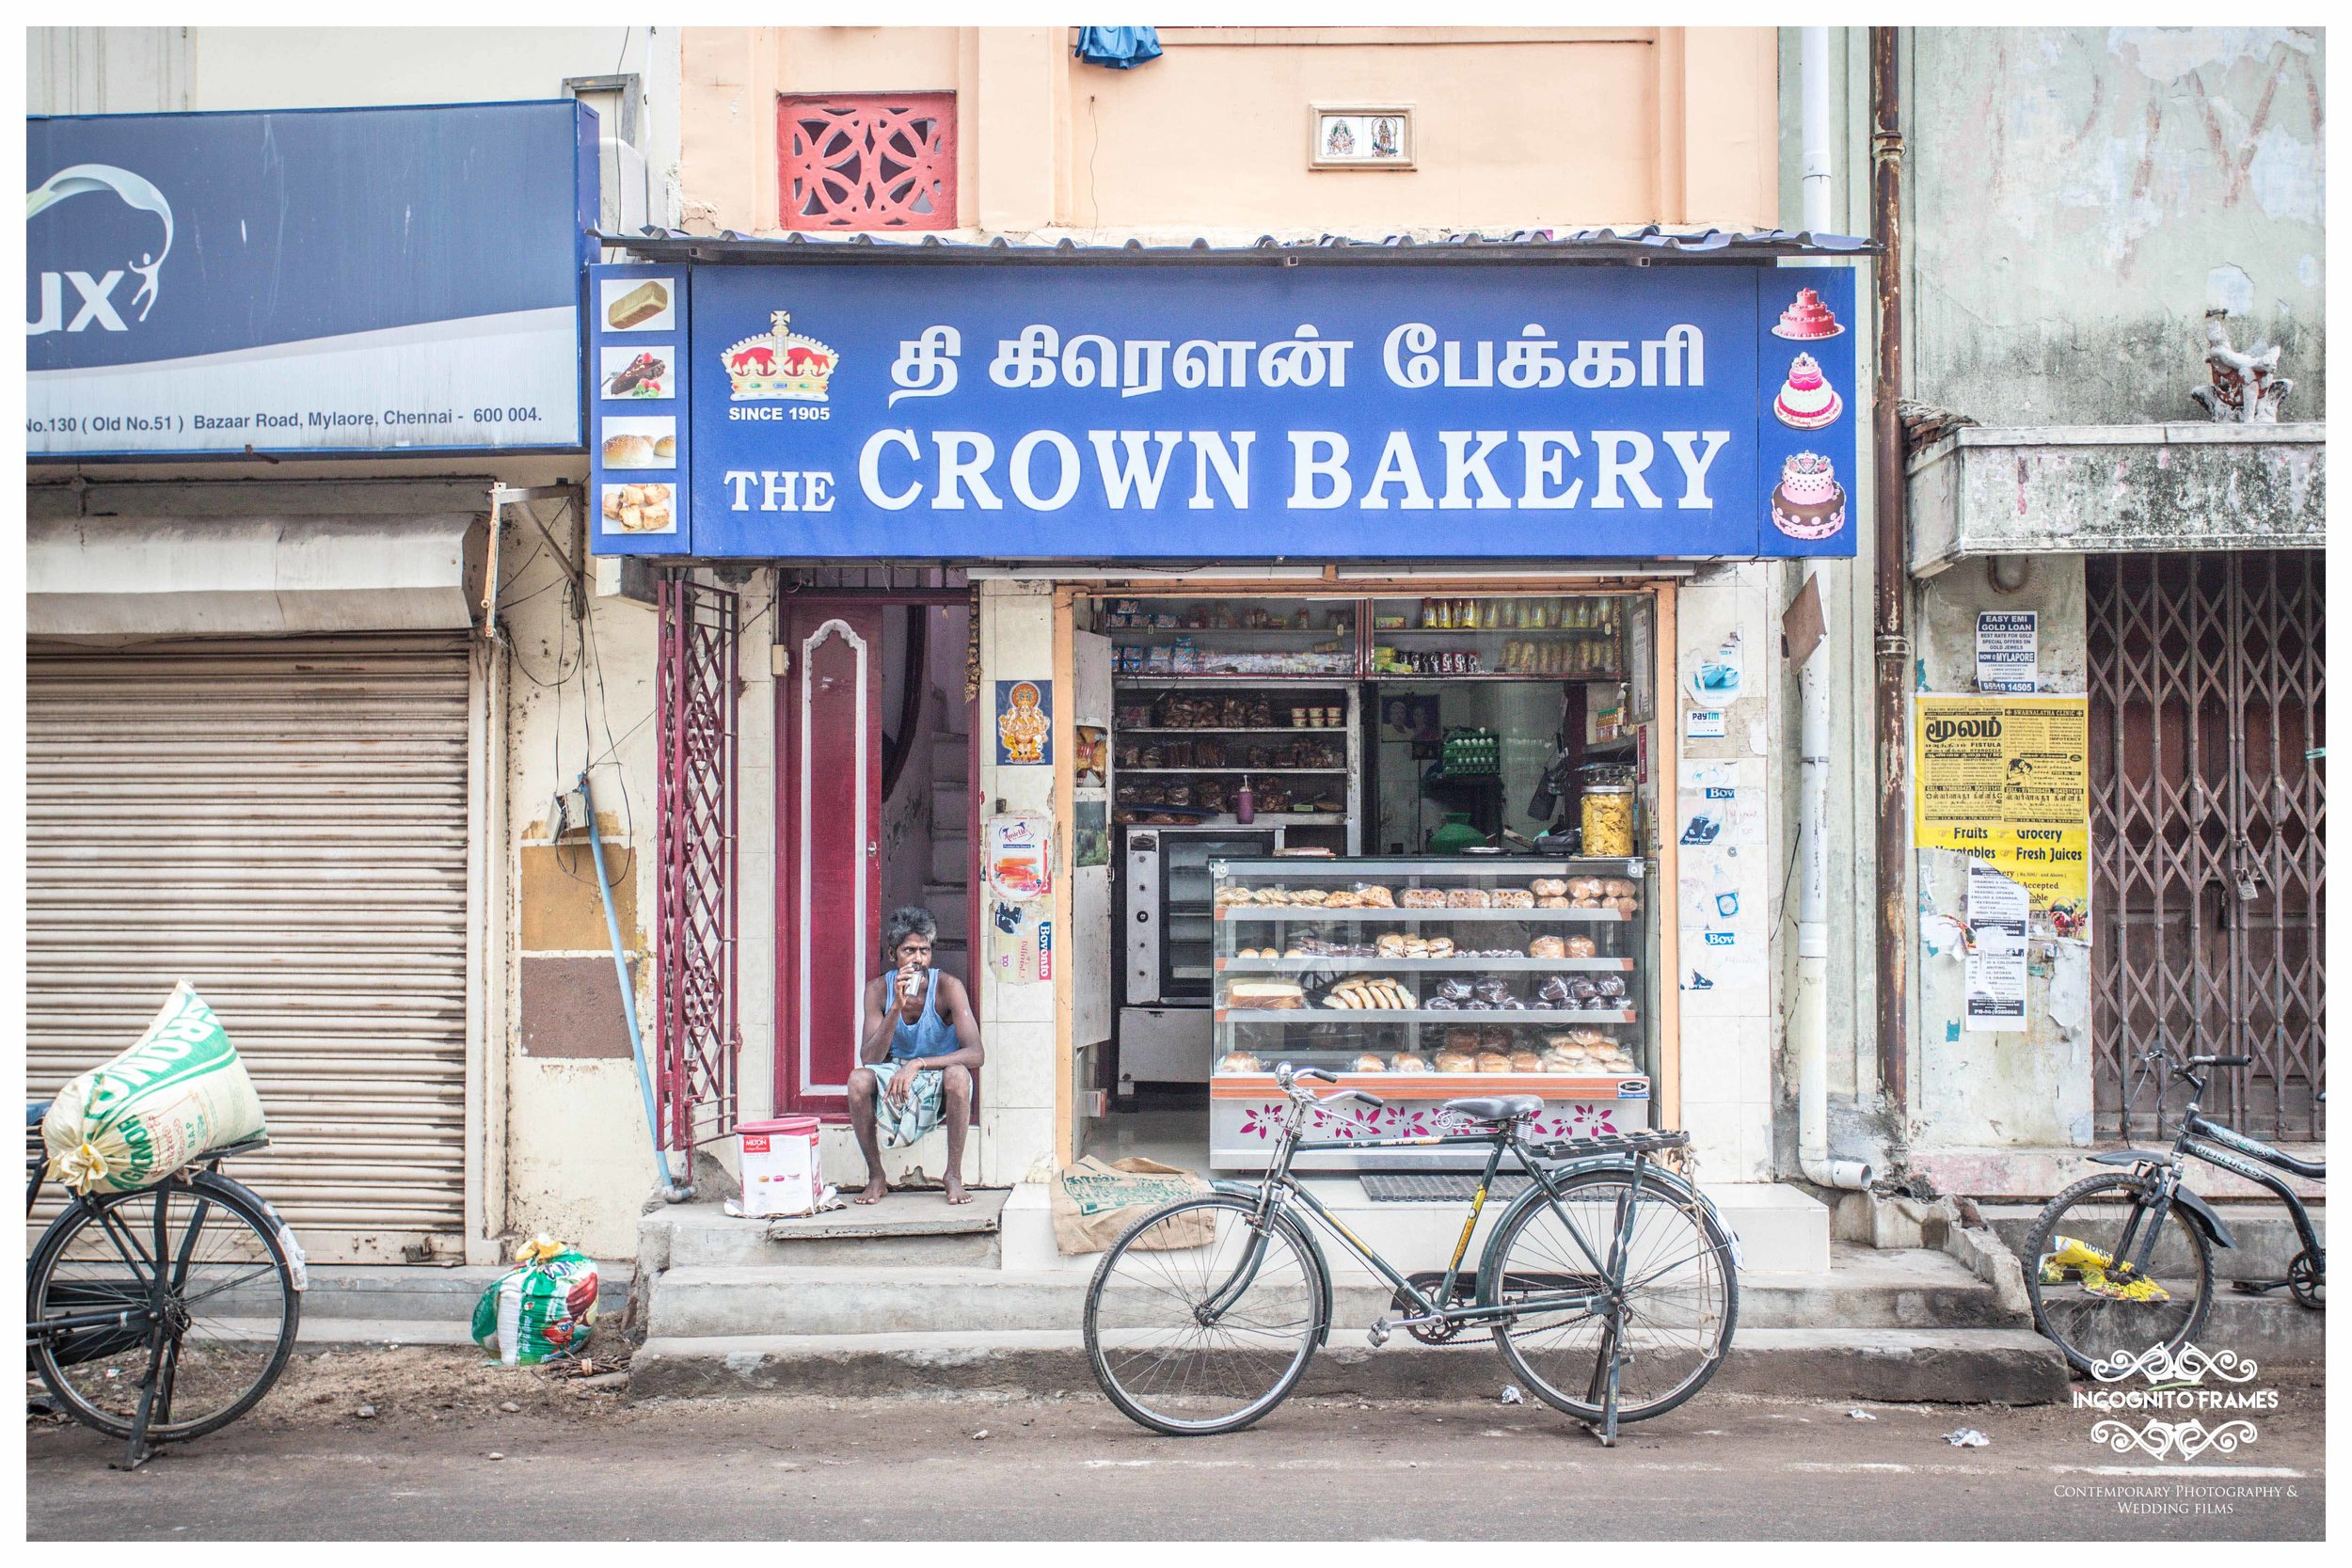 The Crown Bakery since 1905